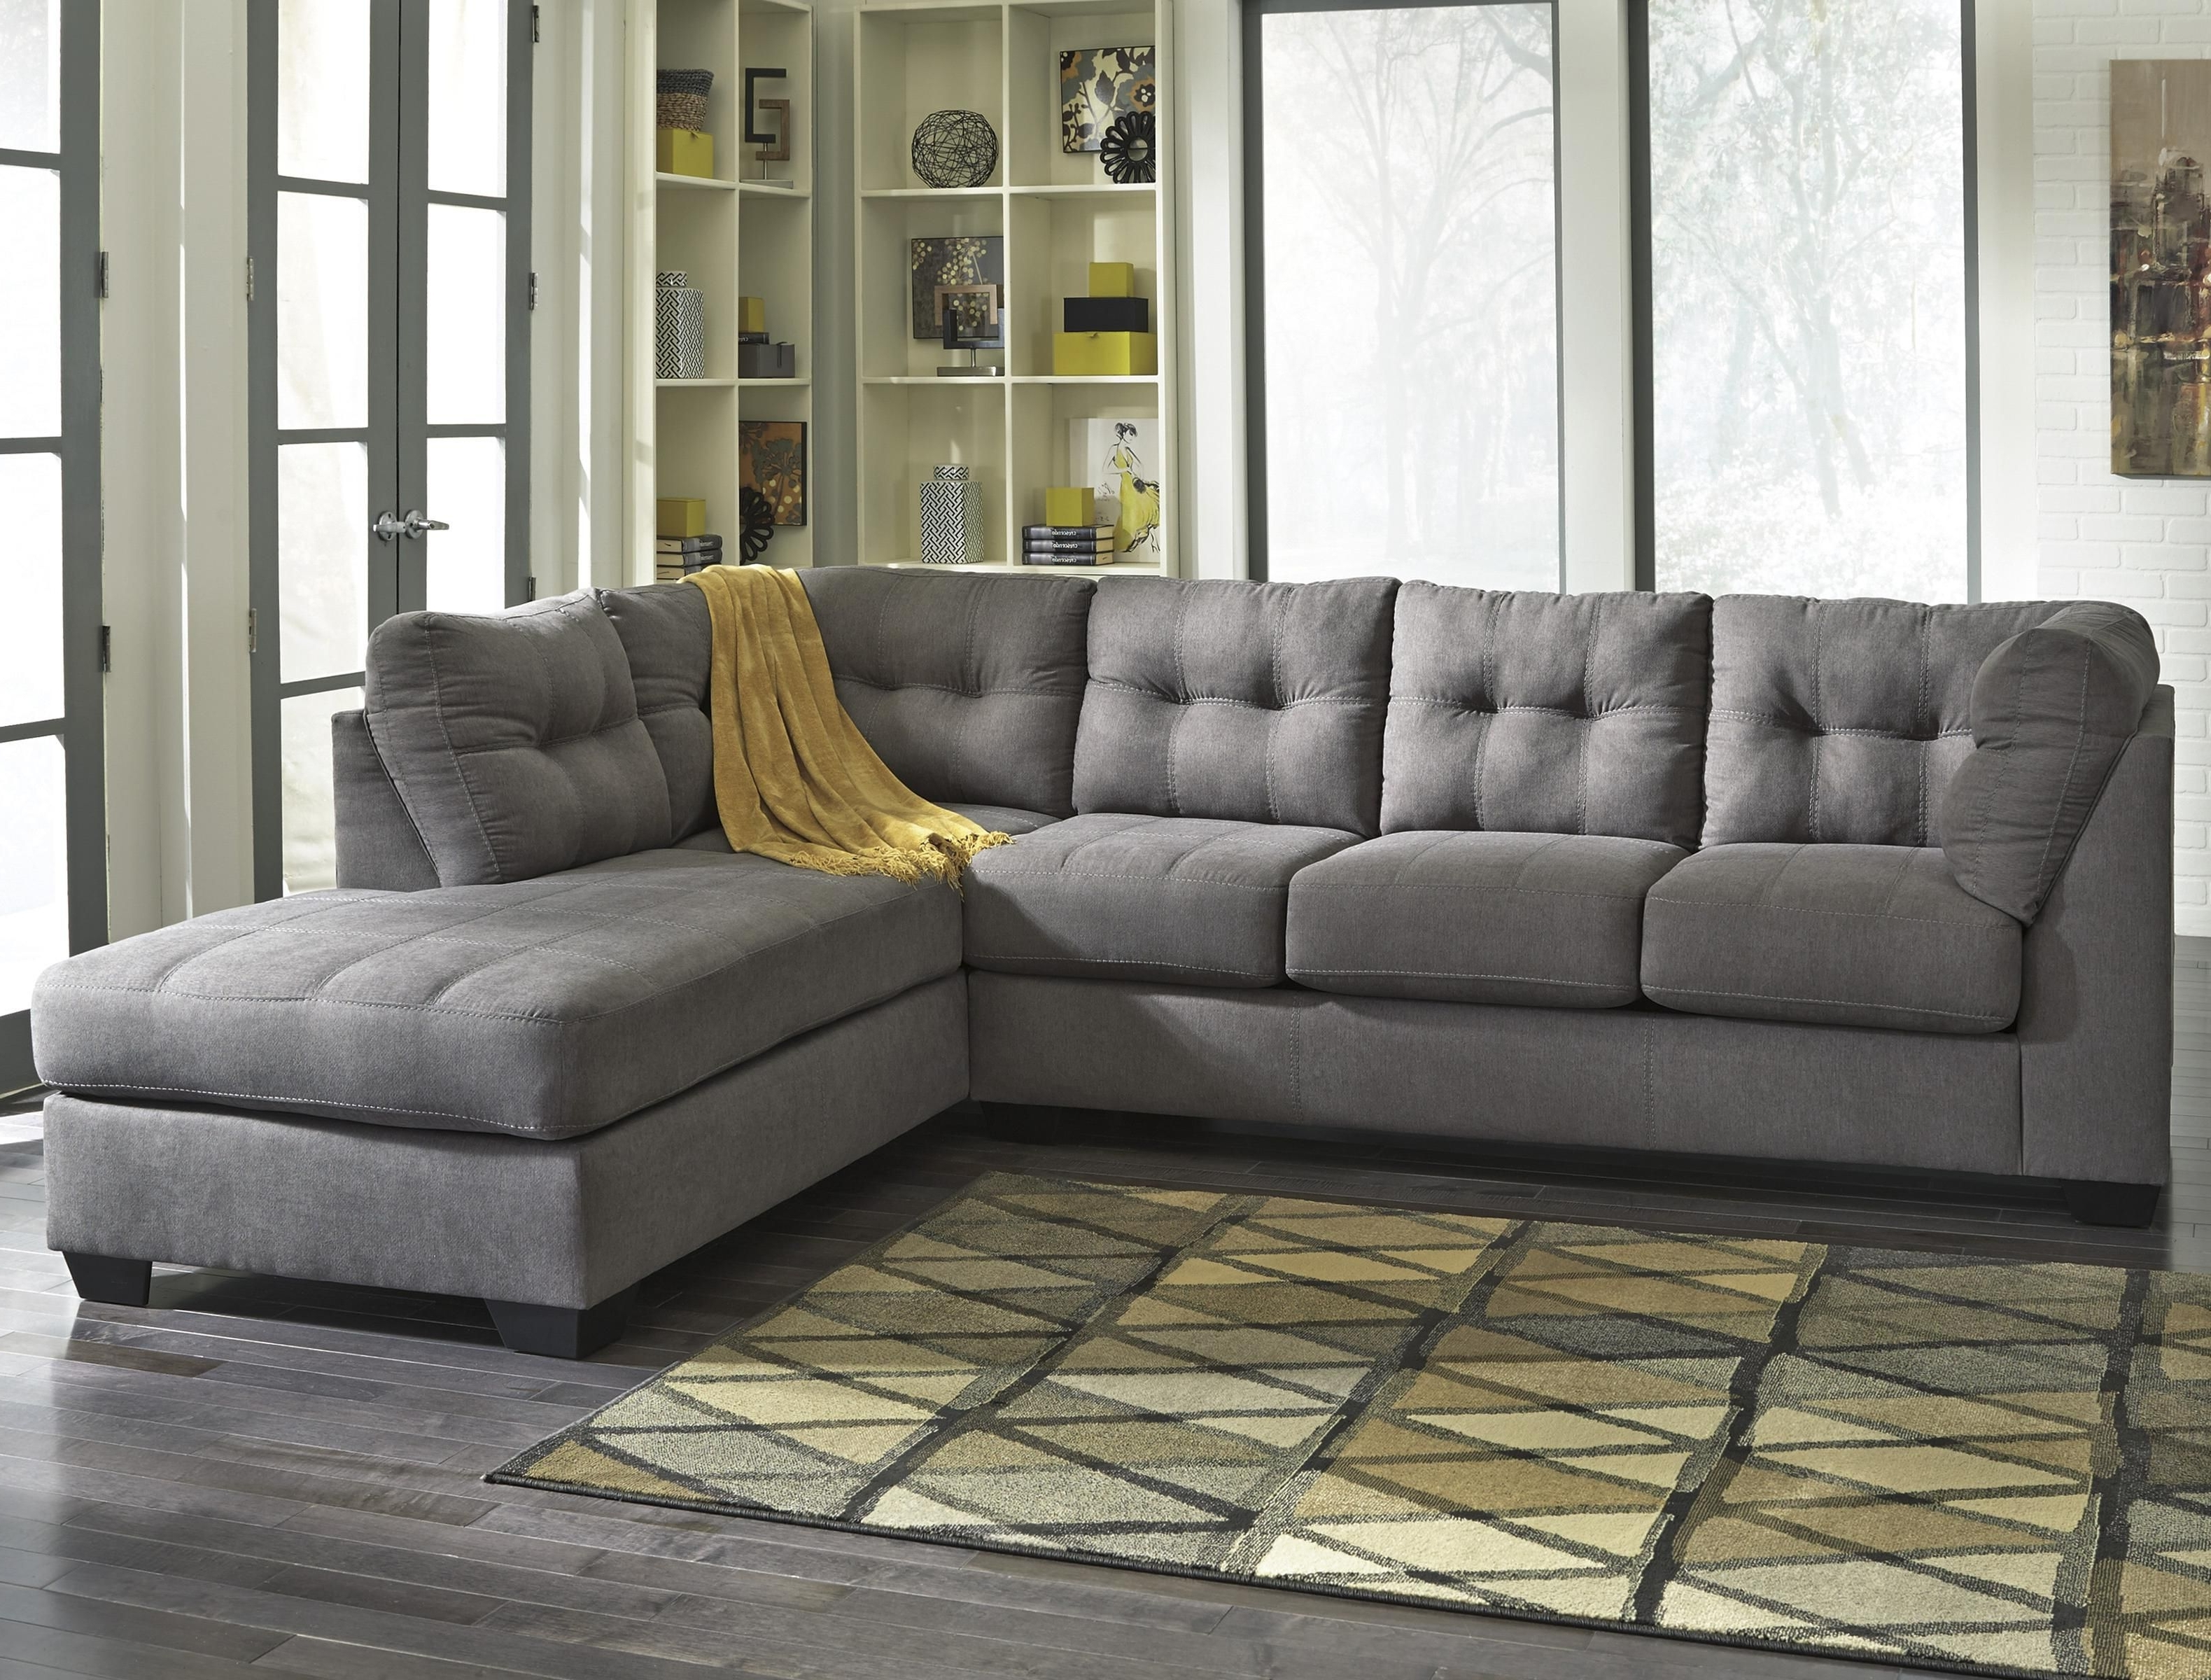 2 Piece Sectionals With Chaise Lounge Regarding Best And Newest 2 Piece Sectional W/ Sleeper Sofa & Chaise Maier – Charcoal  (View 2 of 15)